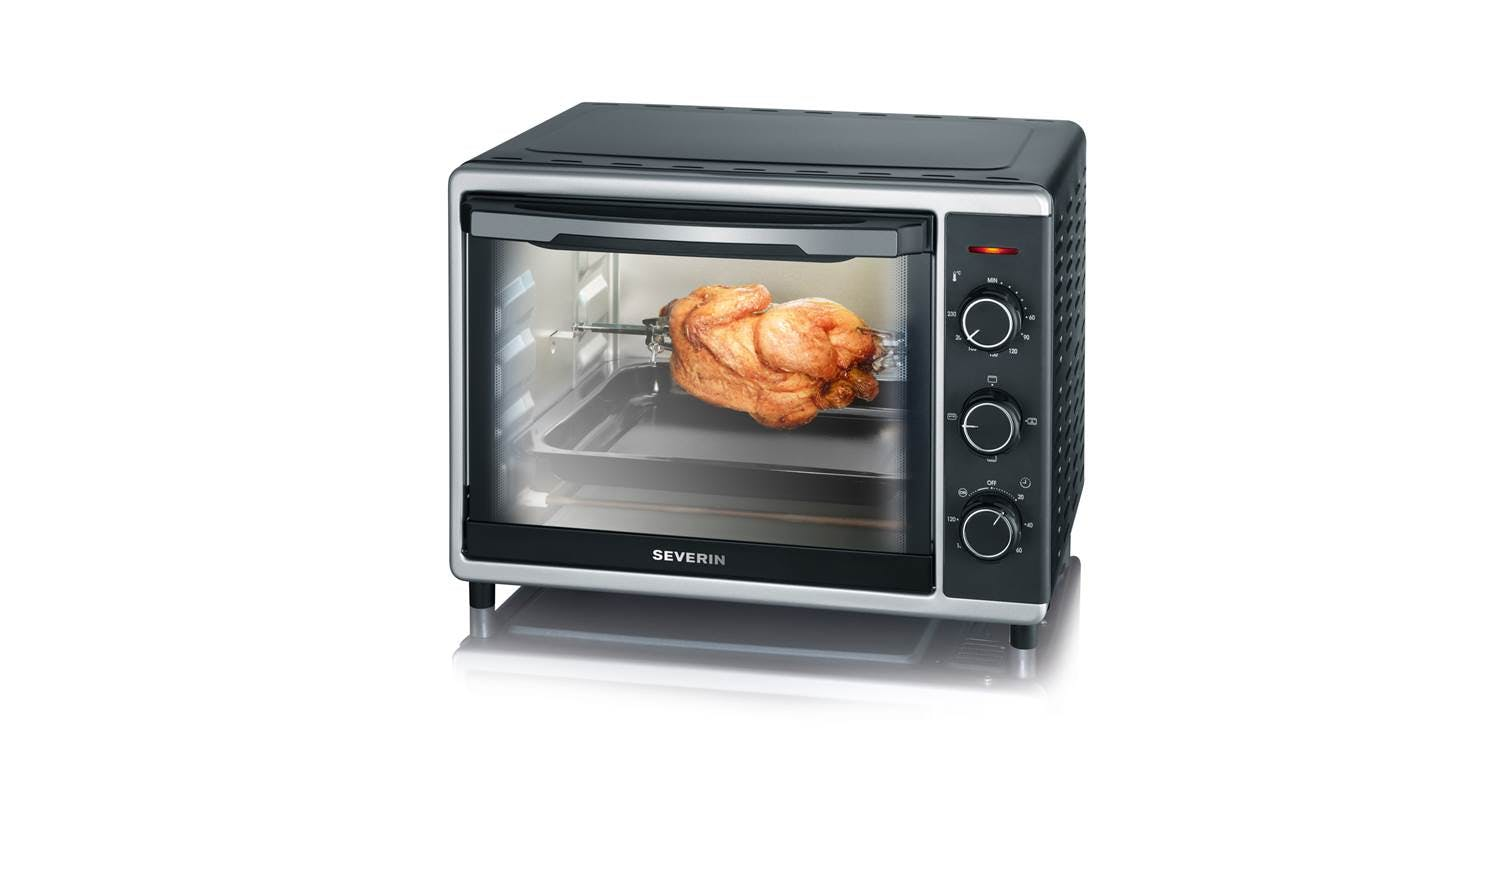 toaster rotisserie largest amazon and dining oven countertop hamilton convection dp kitchen com with beach